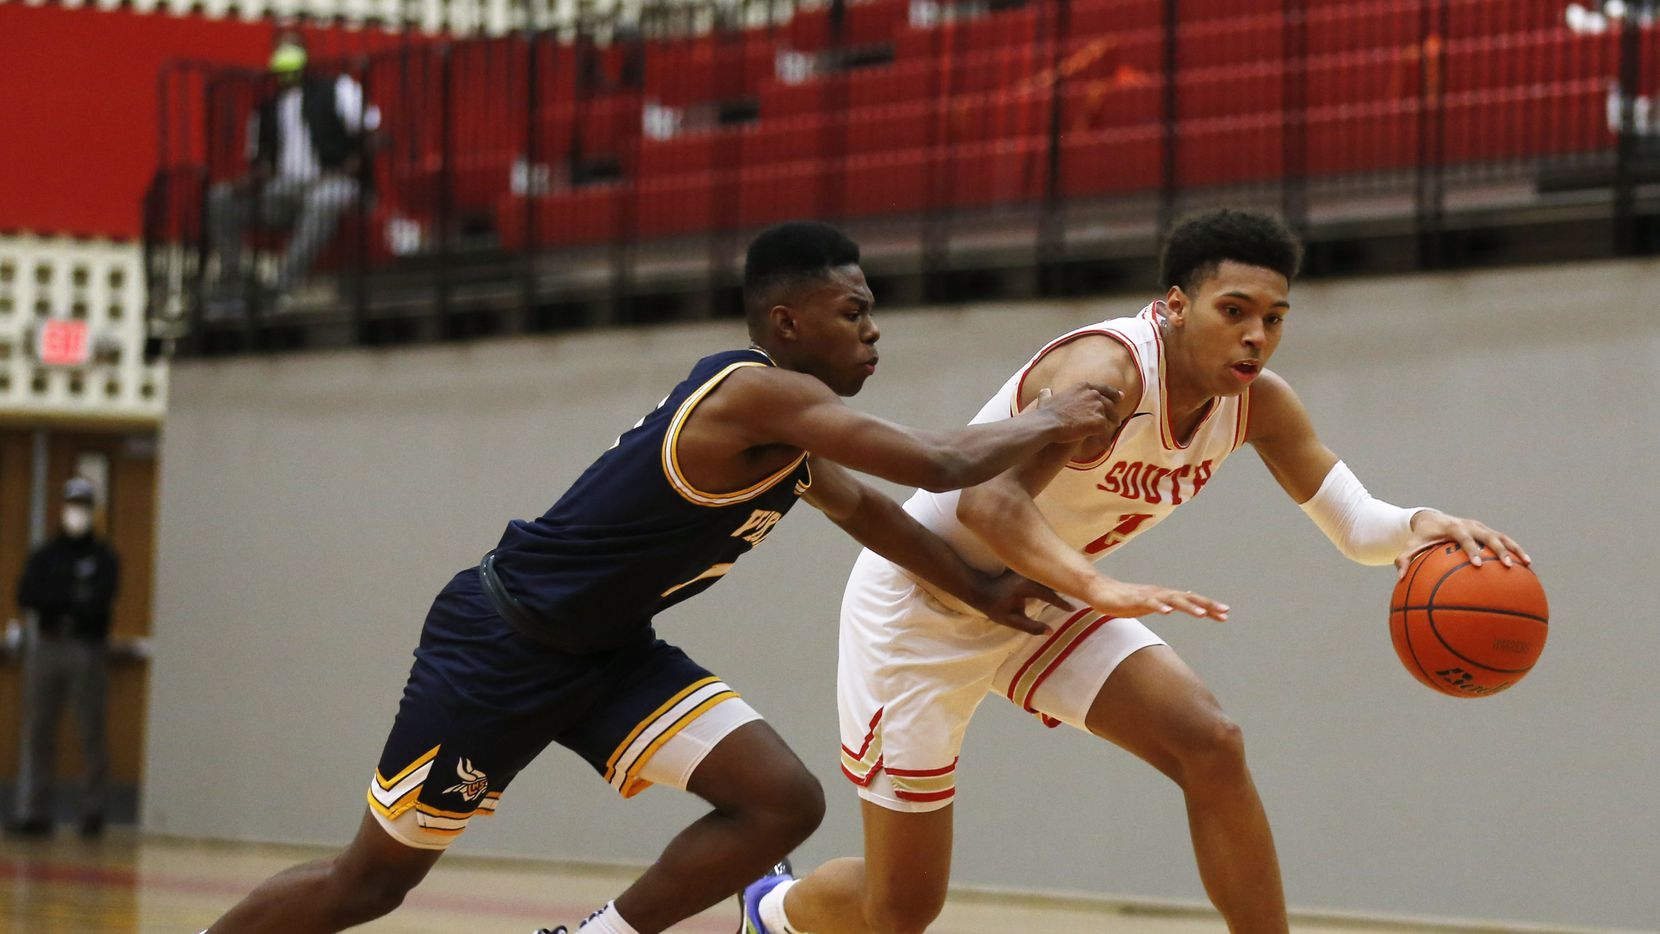 South Grand Prairie's Jordan Roberts (2) drives towards the basket as  Arlington Lamar's Jalen Ware-Williams (1) defends  during the first quarter of play at South Grand Prairie High School on Tuesday, January 19, 2021in Grand Prairie, Texas.